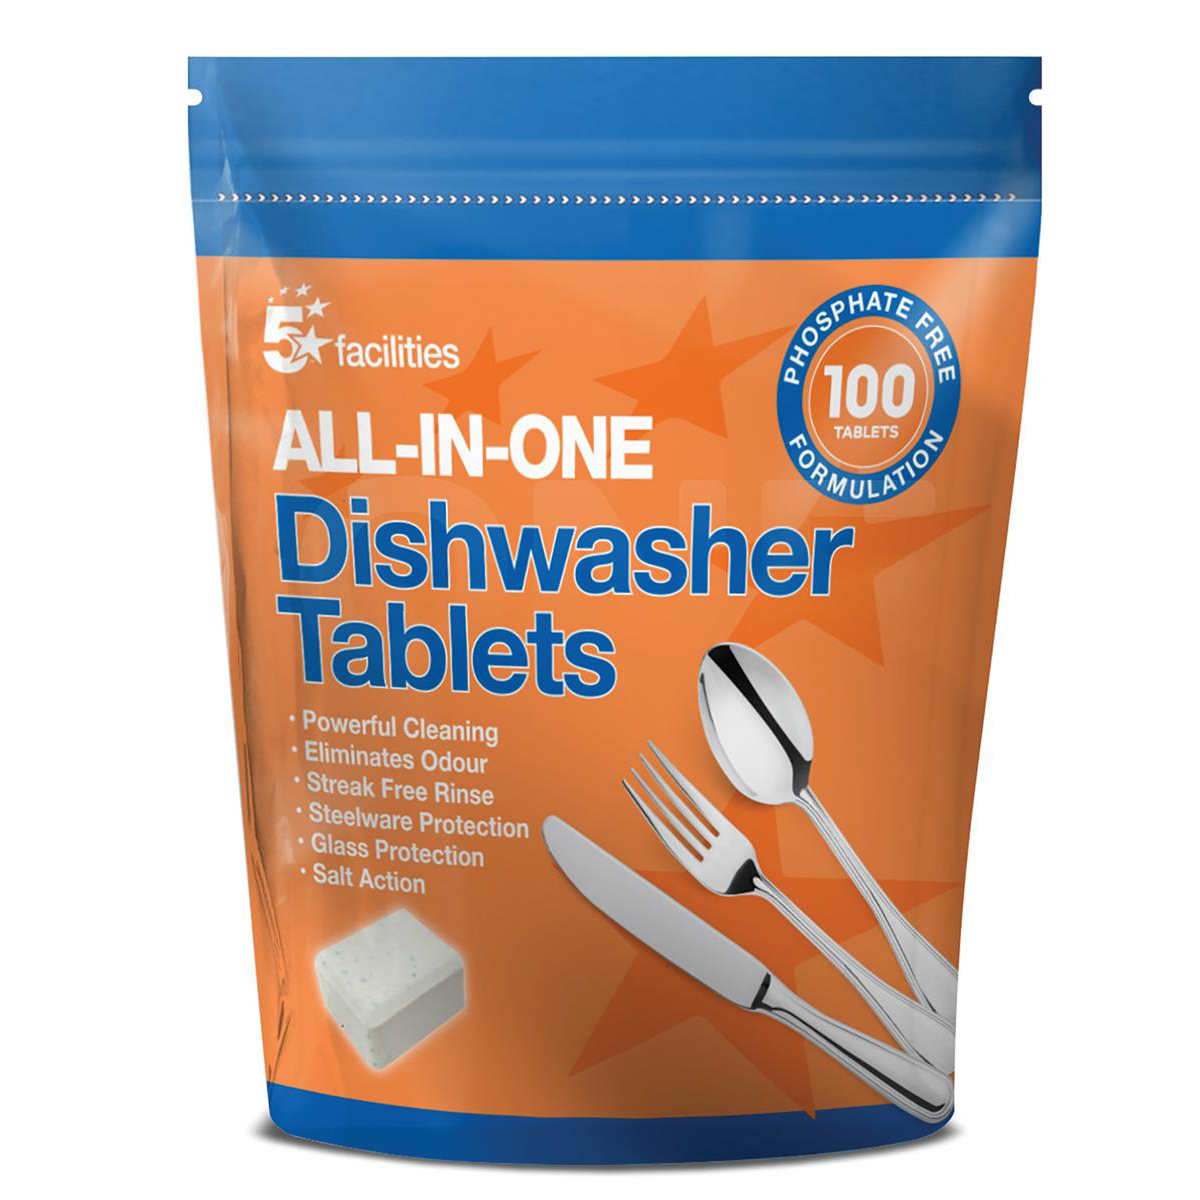 5 Star Facilities All-in-one Dishwasher Tablets Pack 100